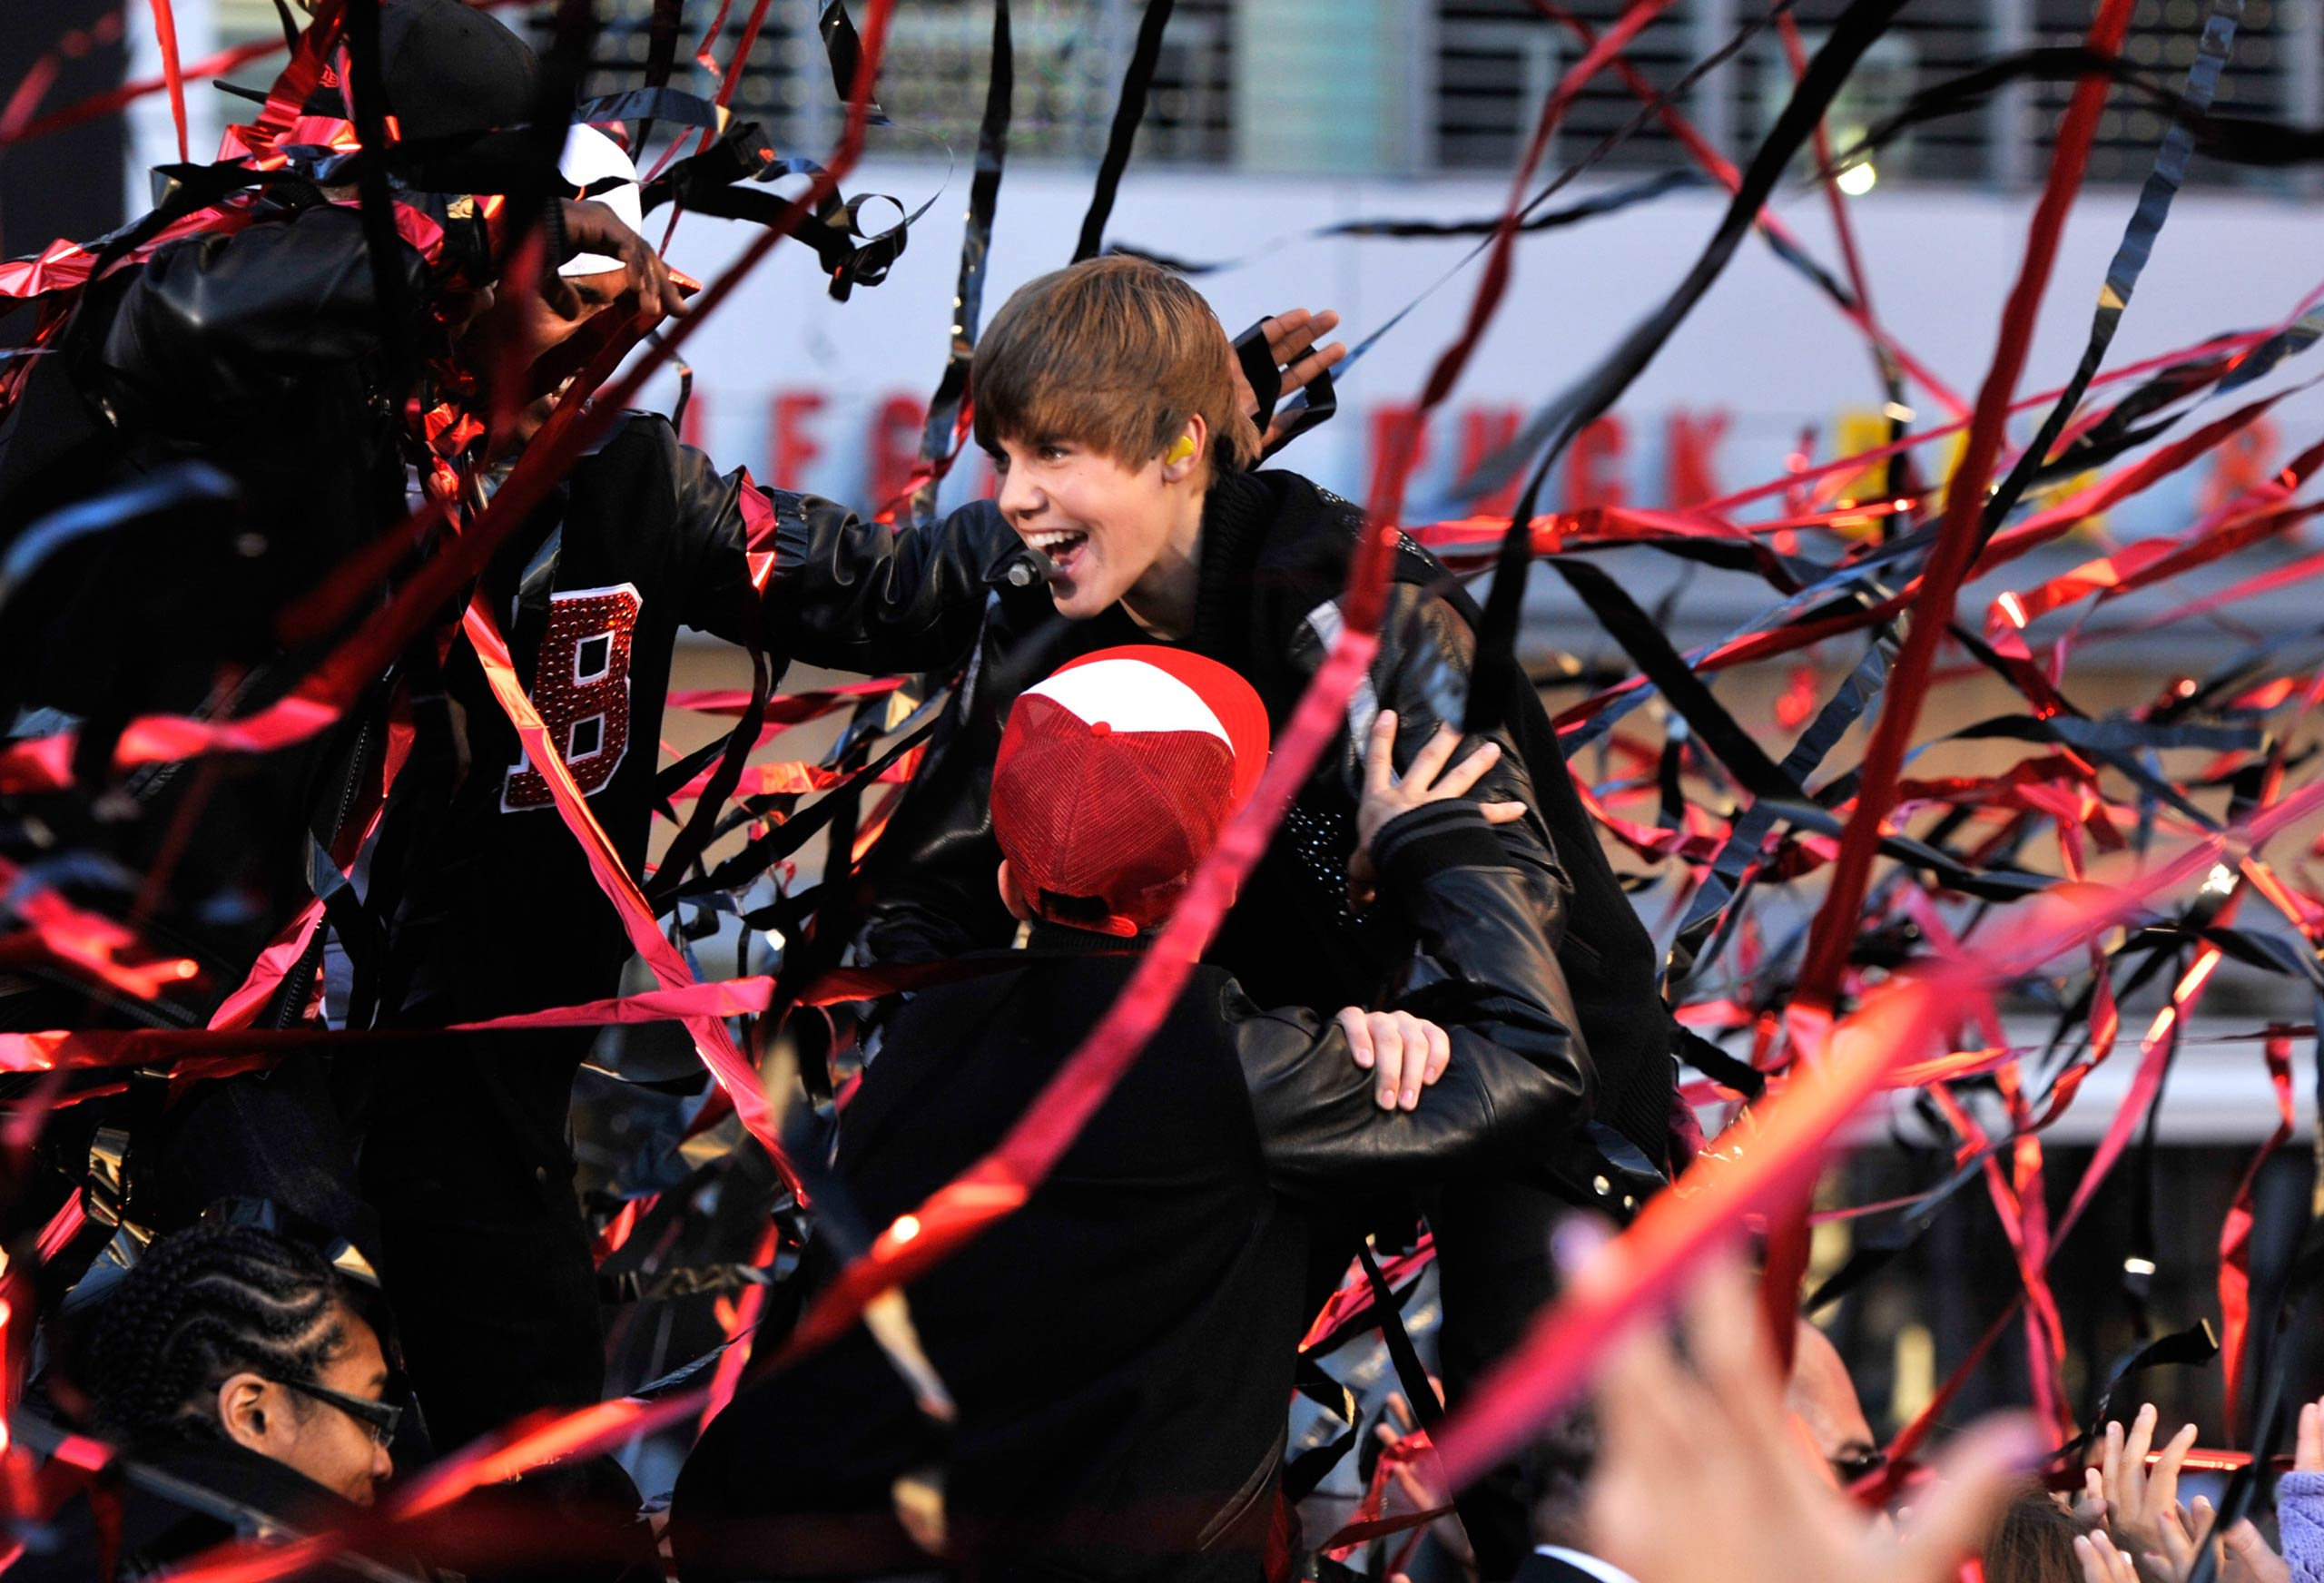 Justin Bieber performs on stage at the 2010 MTV Video Music Awards held at Nokia Theatre L.A. Live in Los Angeles, Calif. in 2010.